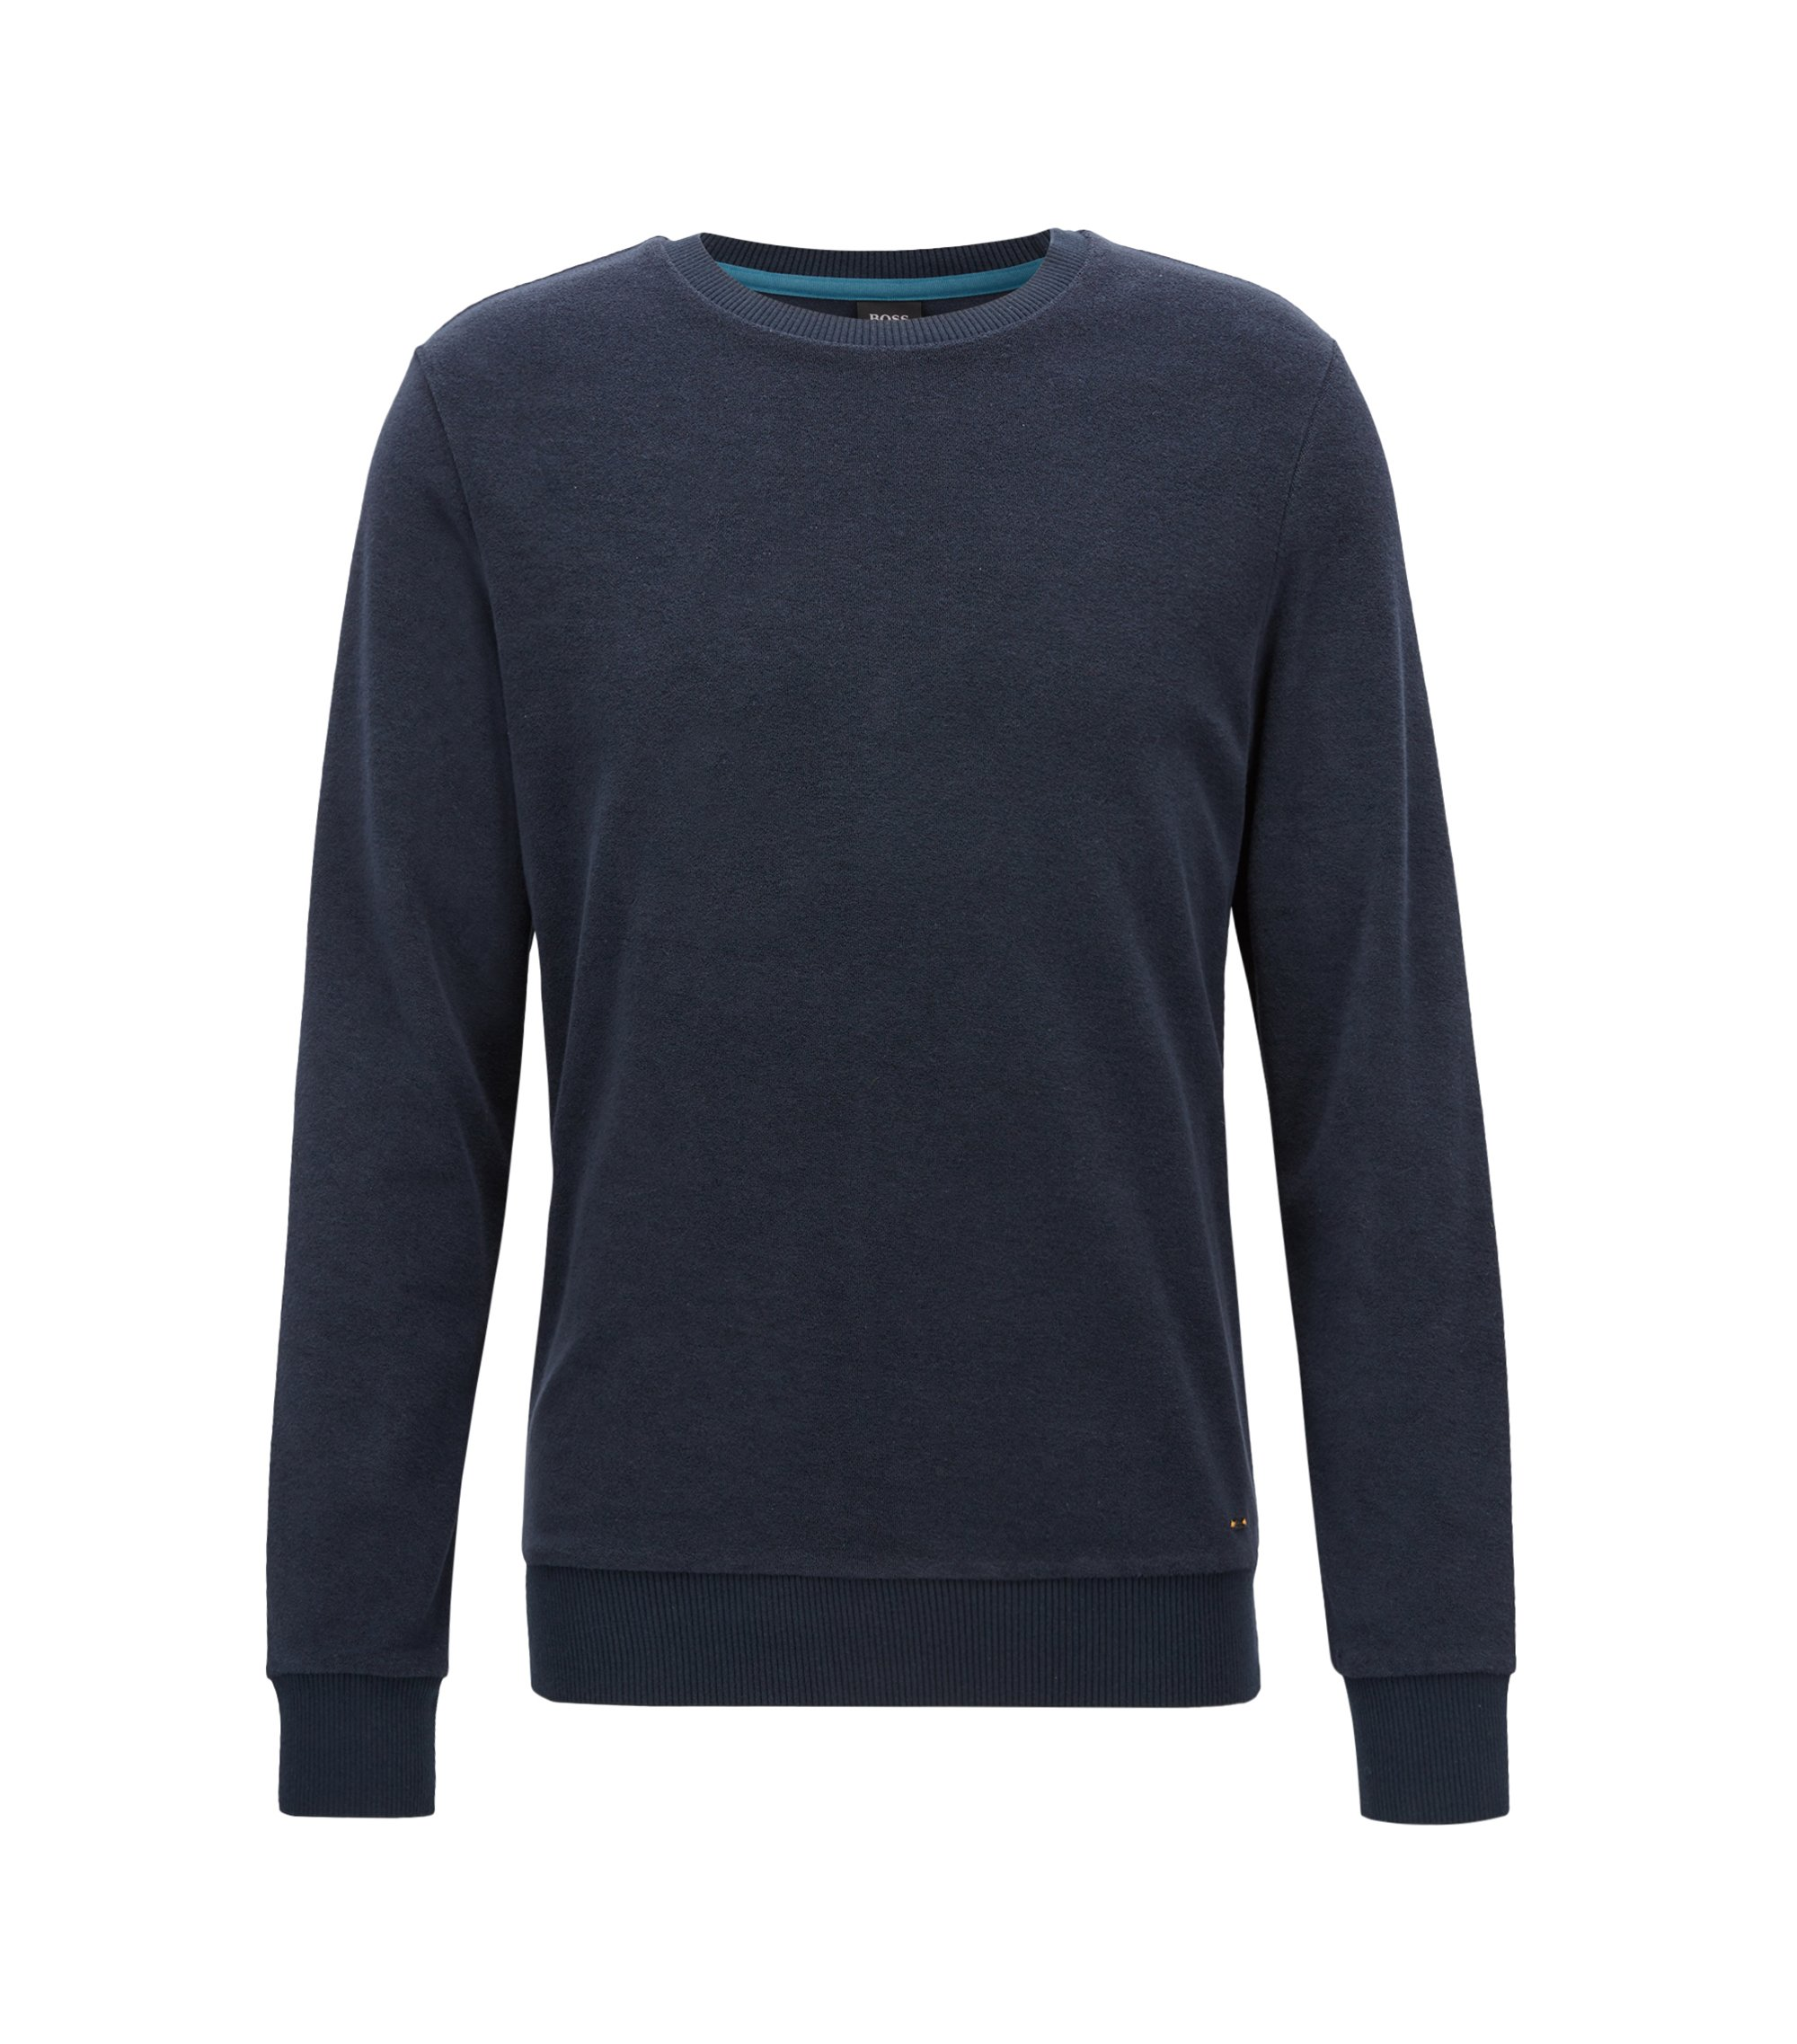 Regular-fit long-sleeved T-shirt in towelling jersey, Dark Blue